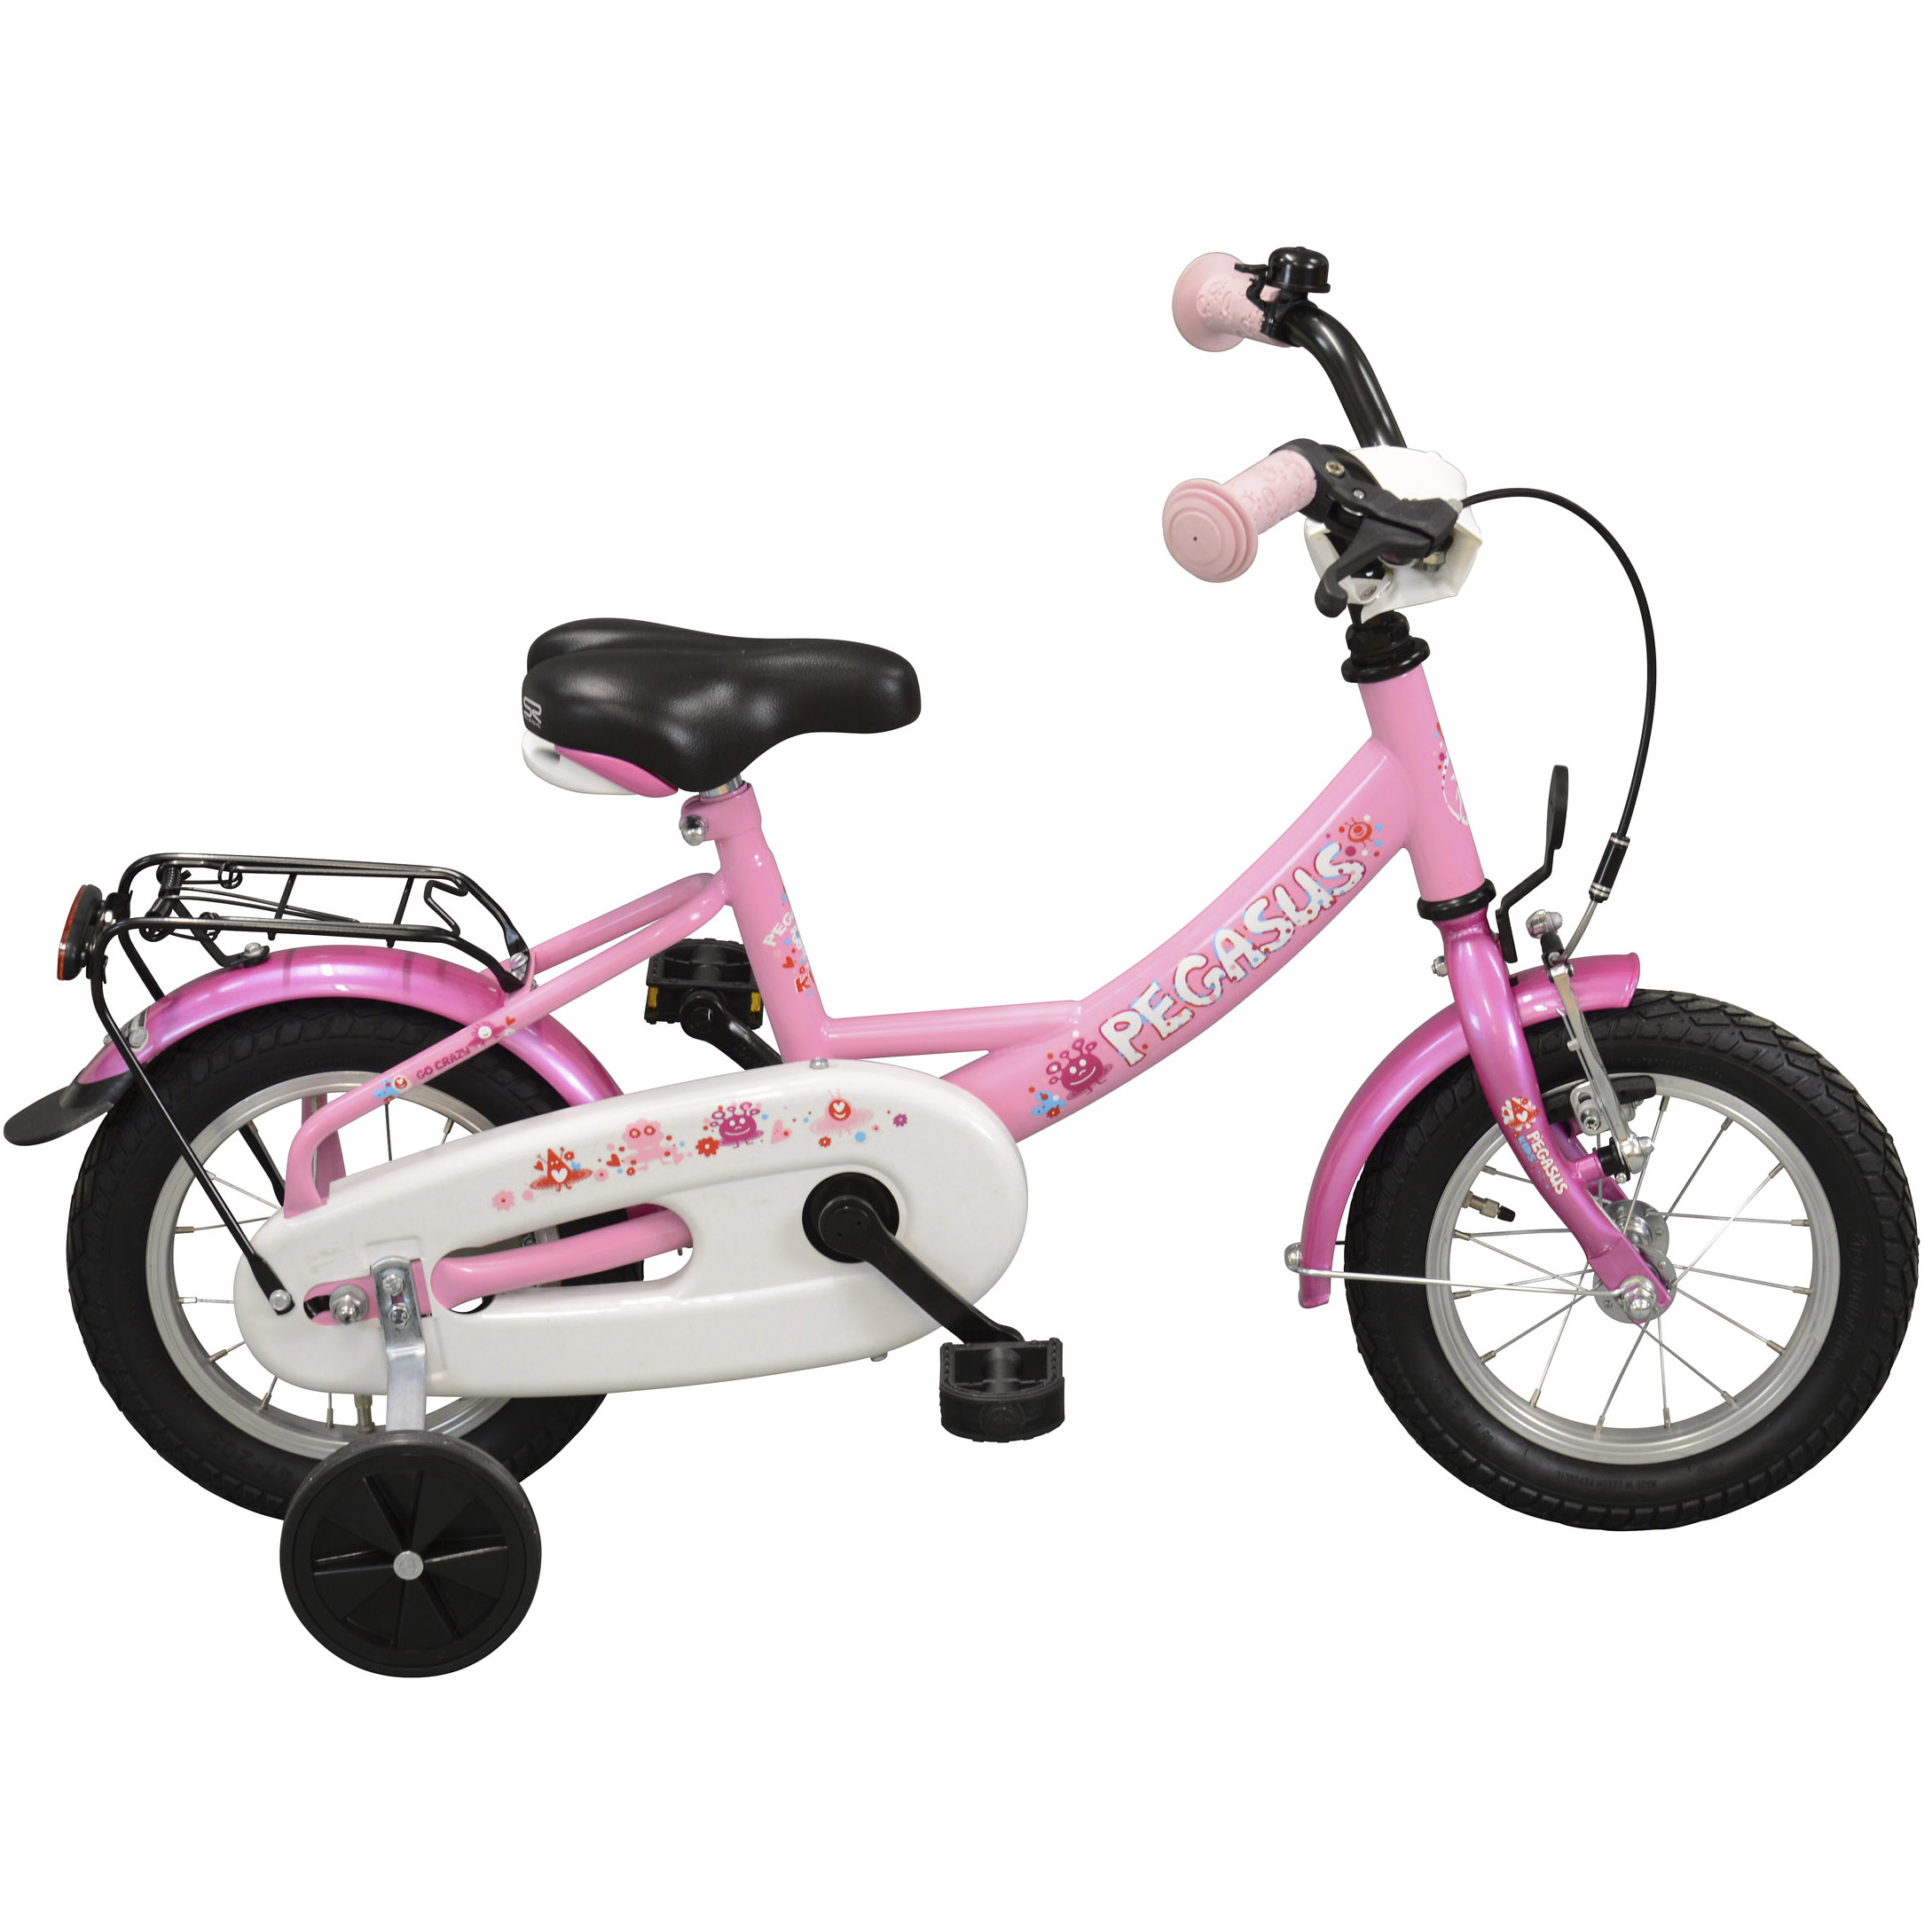 pegasus kids 12 kinderfahrrad online shop zweirad stadler. Black Bedroom Furniture Sets. Home Design Ideas